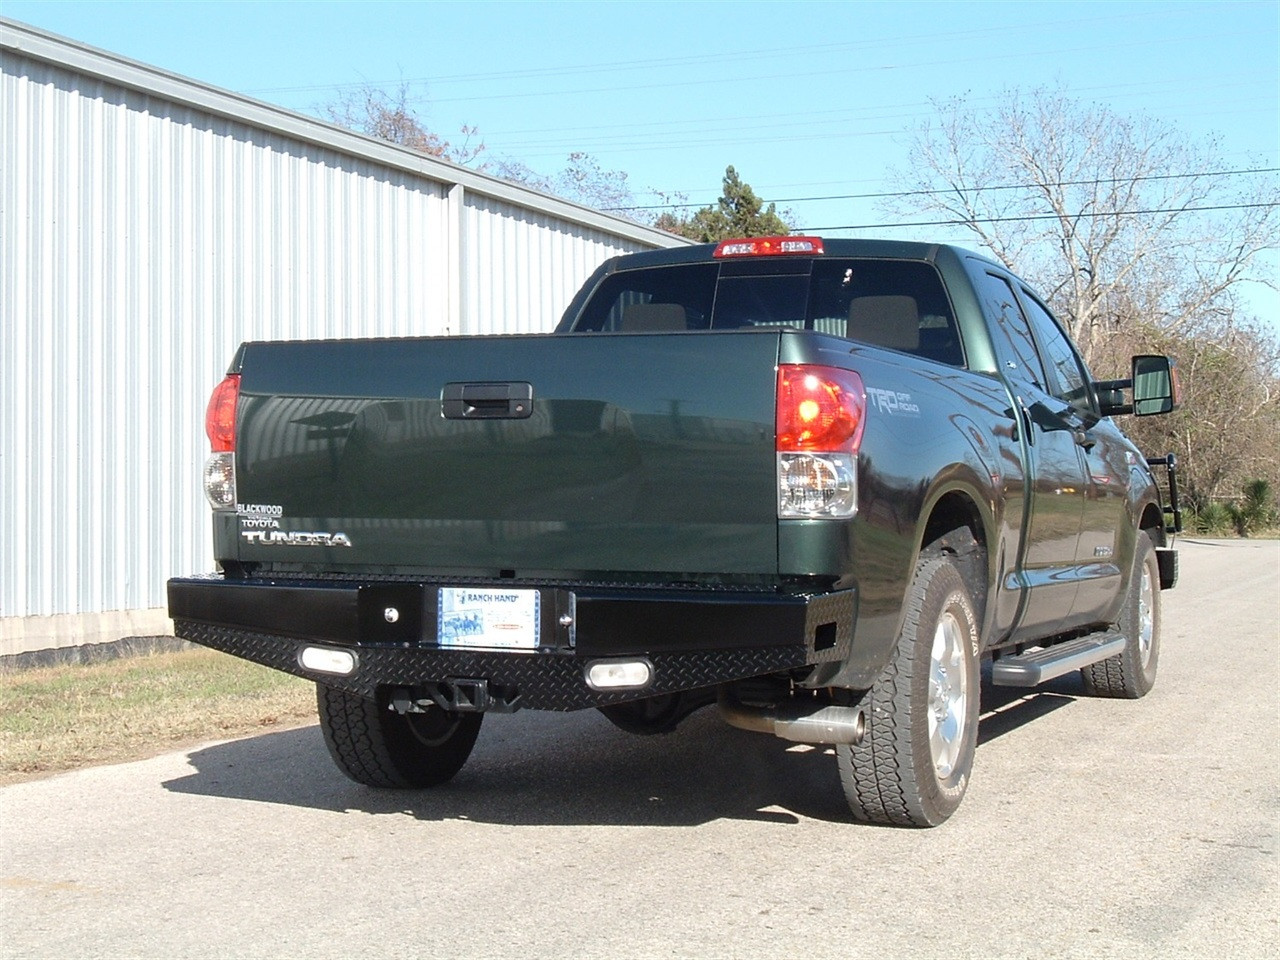 07-13 TUNDRA (EXCL LIMITED) SPORT SERIES REAR BUMPER-MUST HAVE RECEIVE